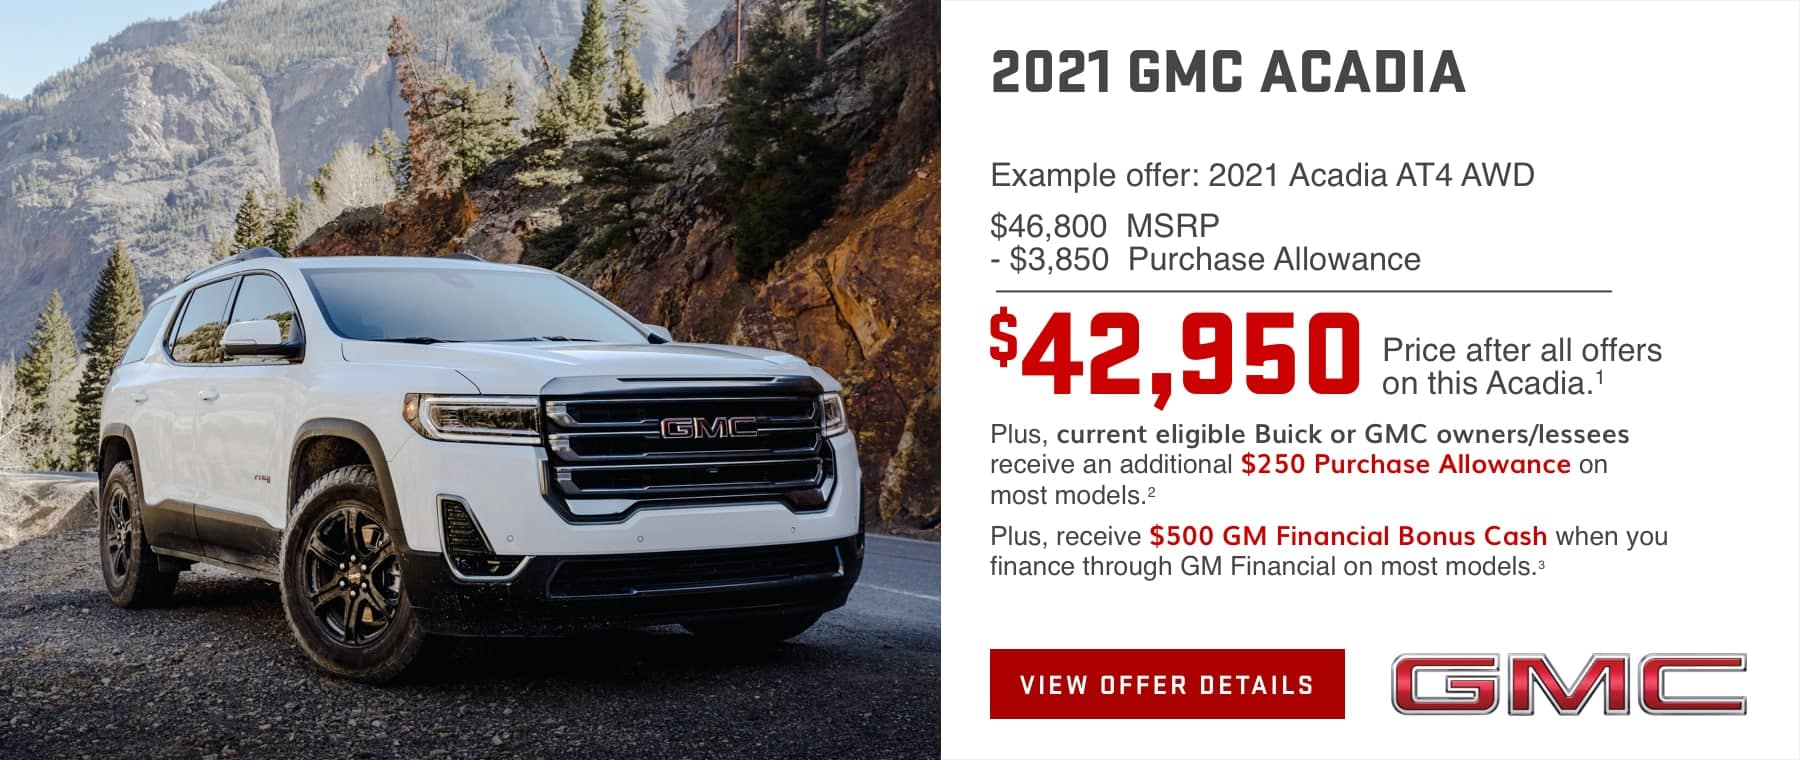 Example offer: 2021 Acadia AT4 AWD $46,800 MSRP $3,850 Purchase Allowance $42,950 Price after all offers on this Acadia.1 Plus, current eligible Buick or GMC owners/lessees receive an additional $250 Purchase Allowance on most models.2 Plus, receive $500 GM Financial Bonus Cash when you finance through GM Financial on most models.3